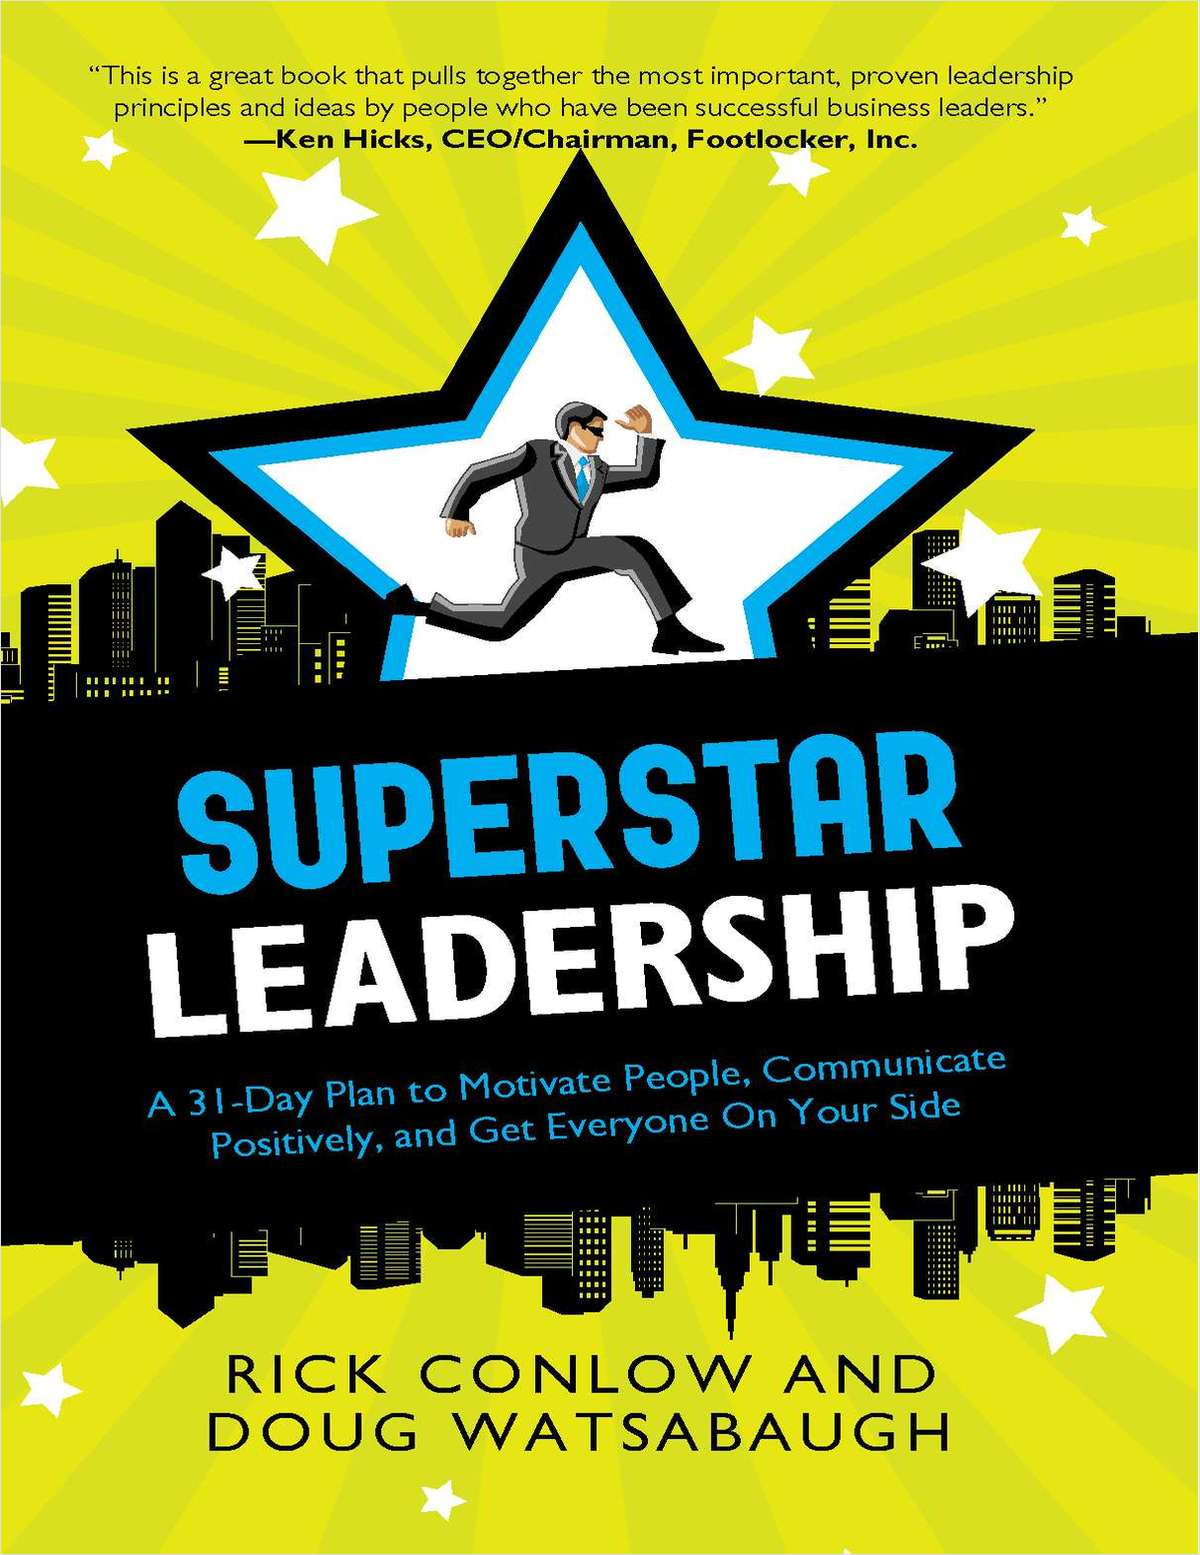 Super Star Leadership -- A 31-Day Plan to Motivate People, Communicate Positively, and Get Everyone On Your Side (A 54-page Excerpt)